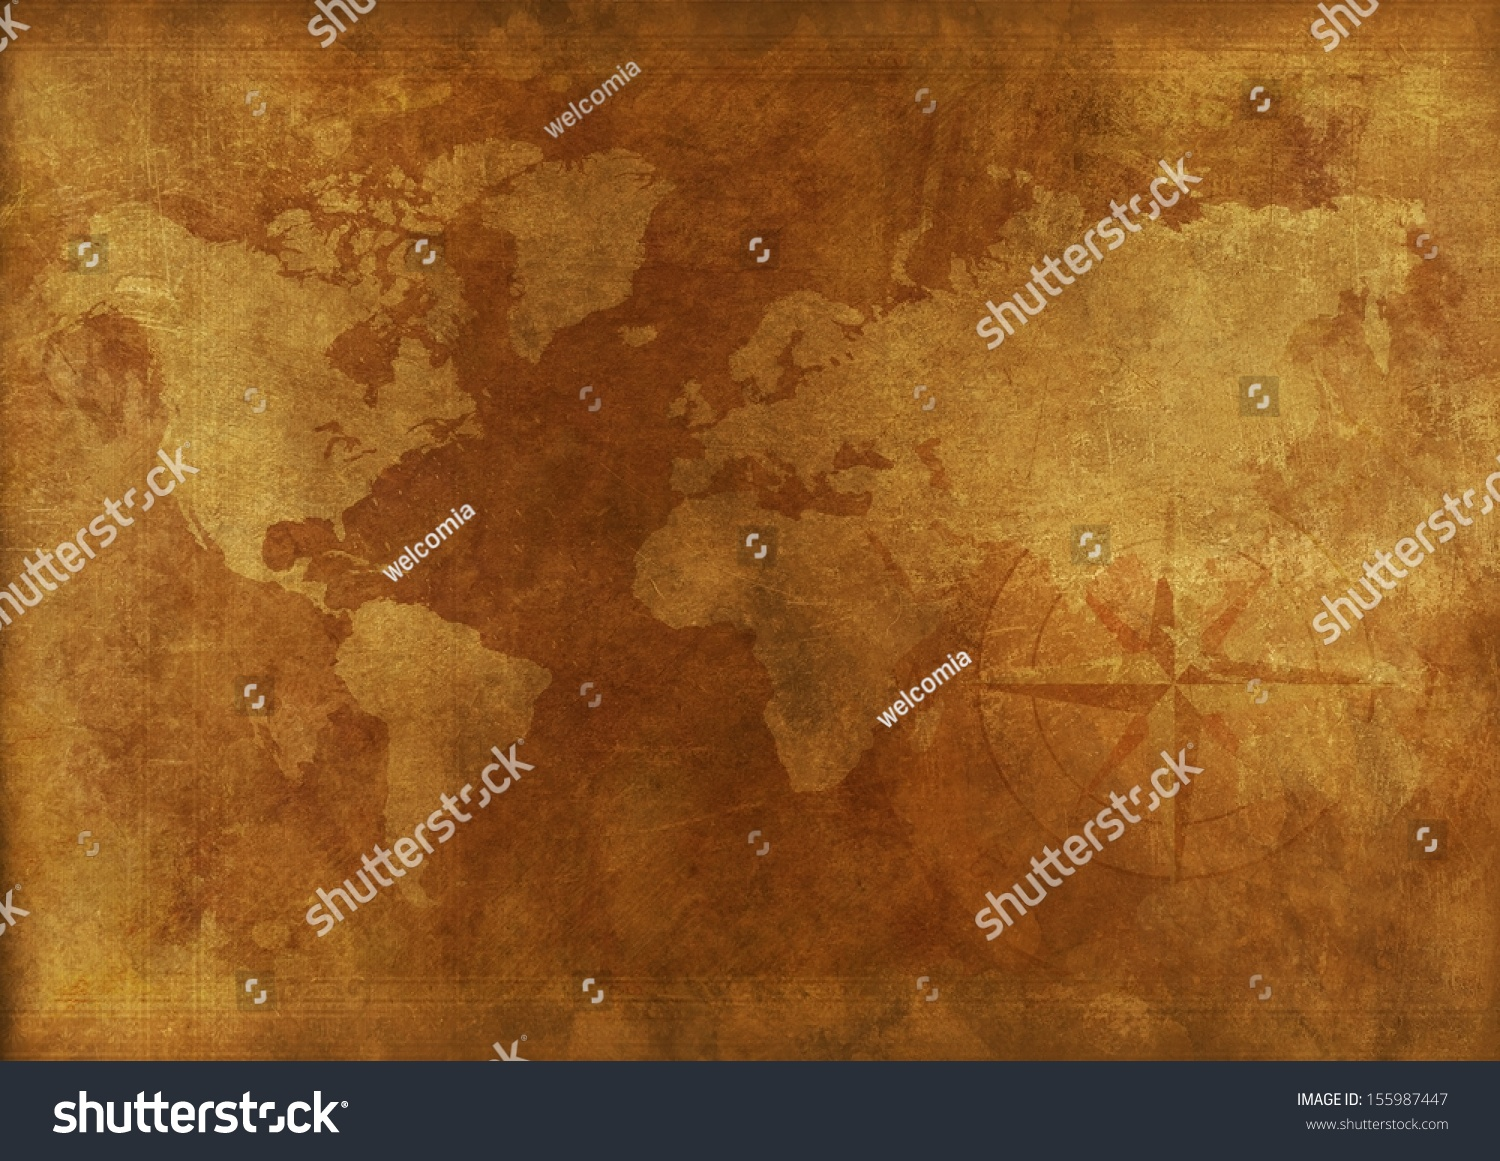 Aged world map vintage background backgrounds stock illustration aged world map vintage background backgrounds collection gumiabroncs Gallery